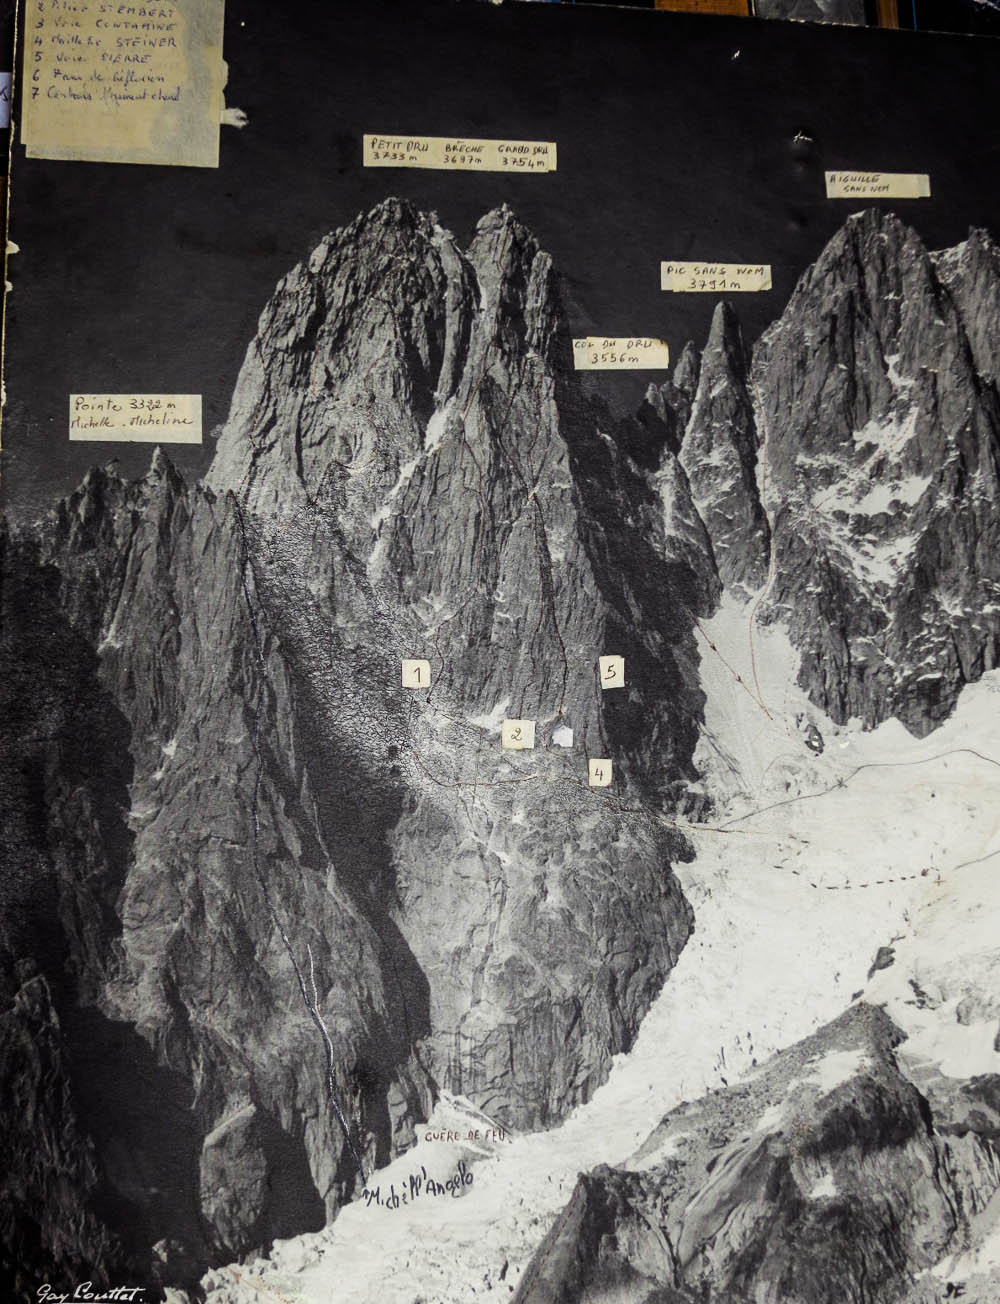 Photo-topo of Drus in the Charpoau